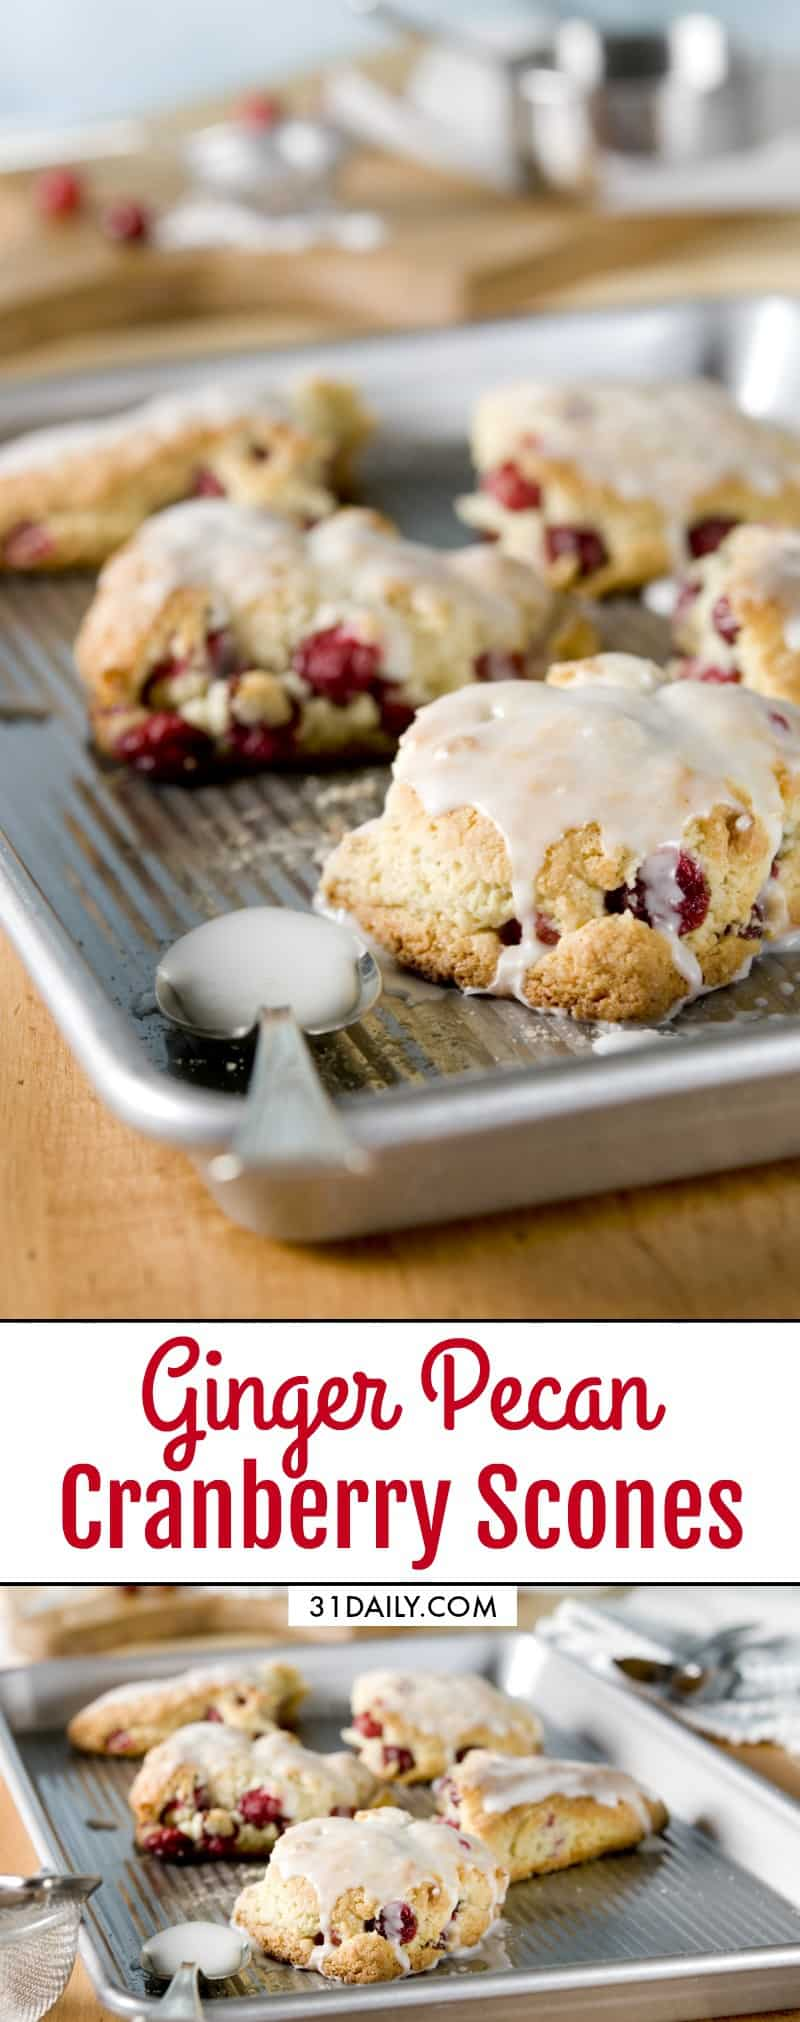 Ginger Pecan Cranberry Scones: Holiday Treats to Share   31Daily.com